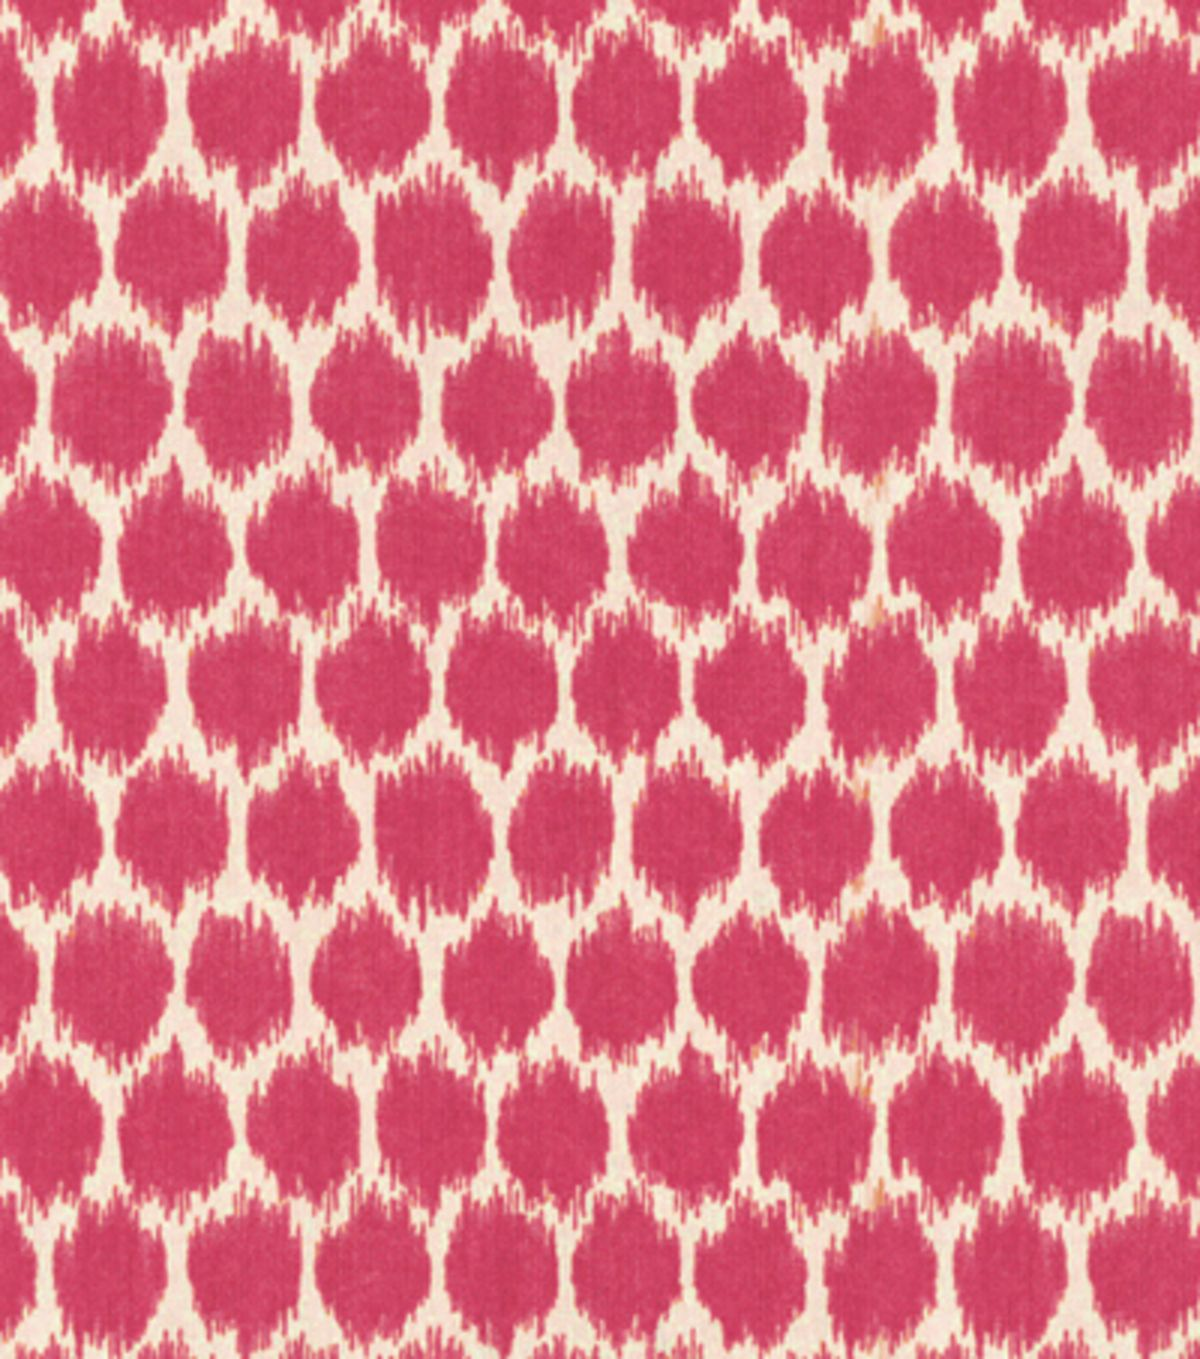 Home Decor Print Fabric Waverly Seeing Spots Jazzberry, , Hi Res.  Coordinating ...